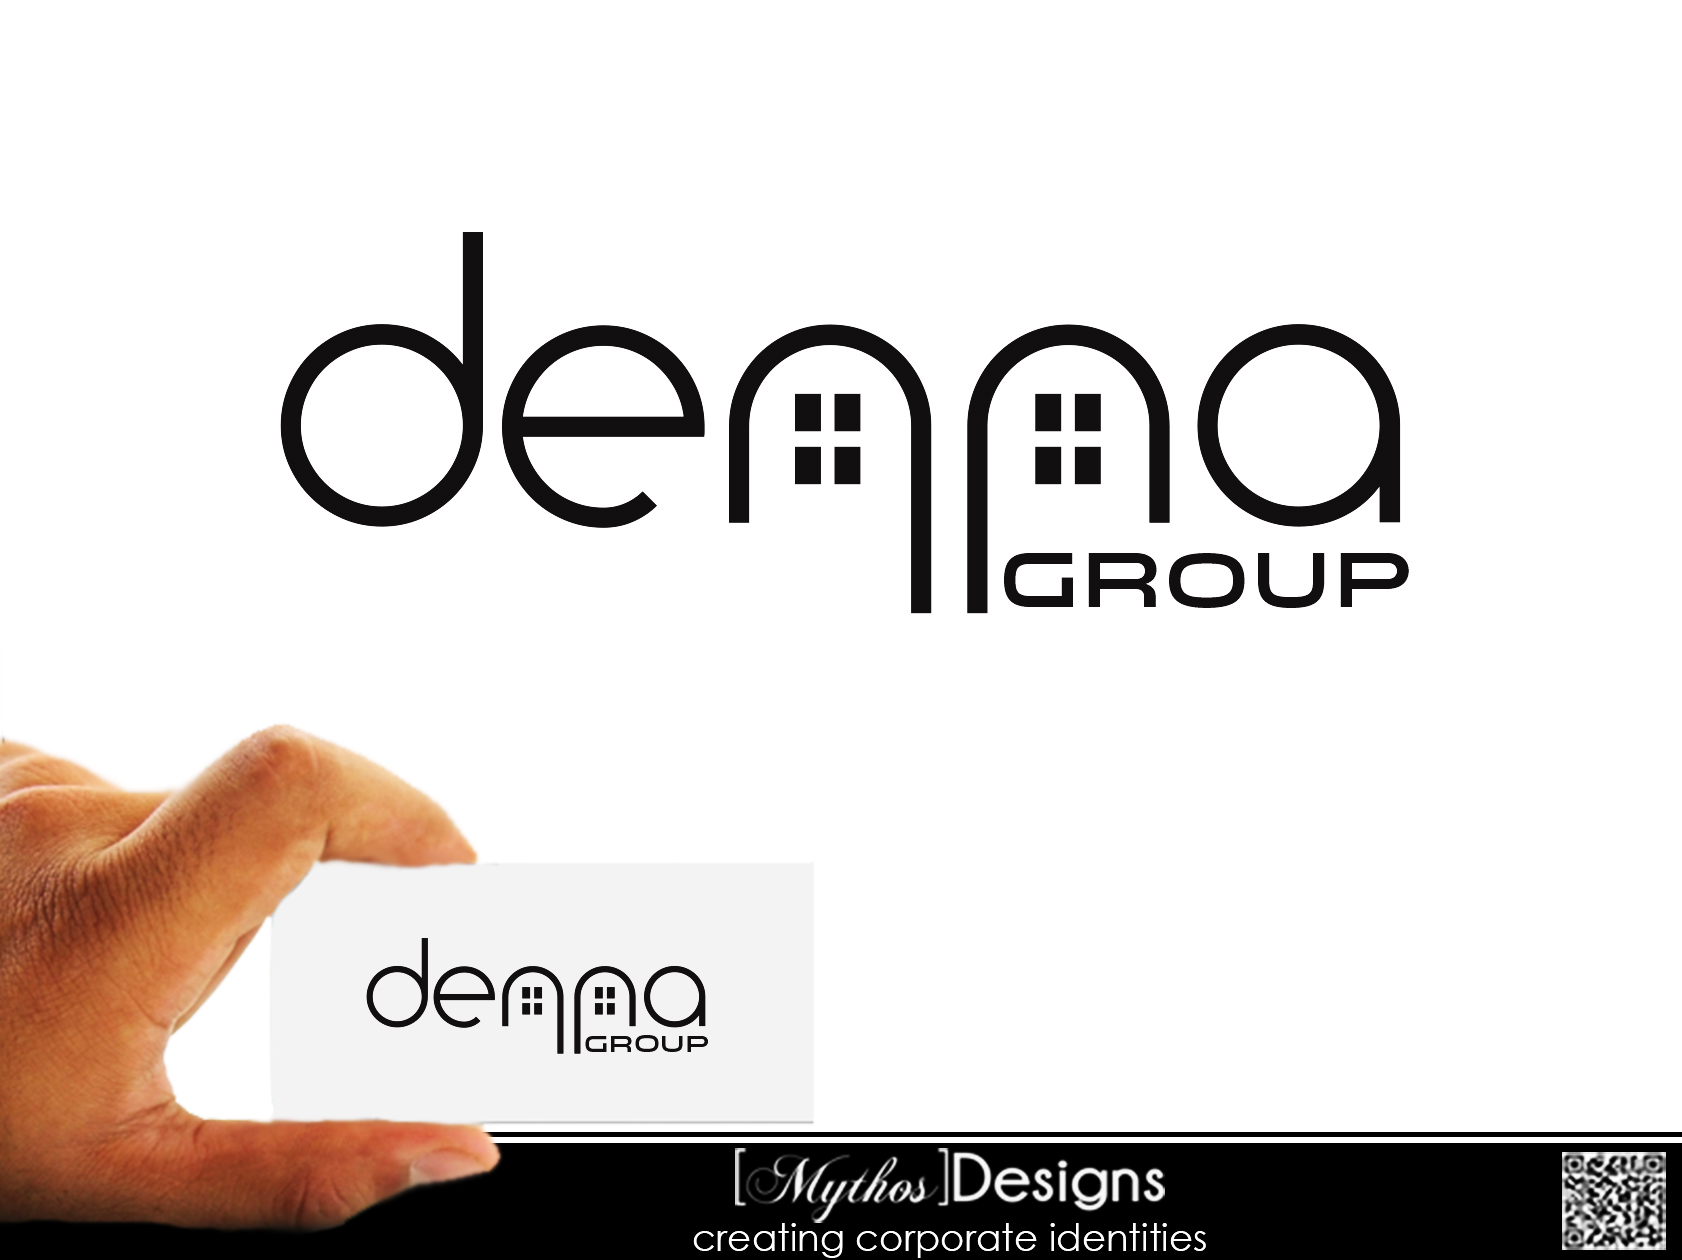 Logo Design by Mythos Designs - Entry No. 249 in the Logo Design Contest Denna Group Logo Design.